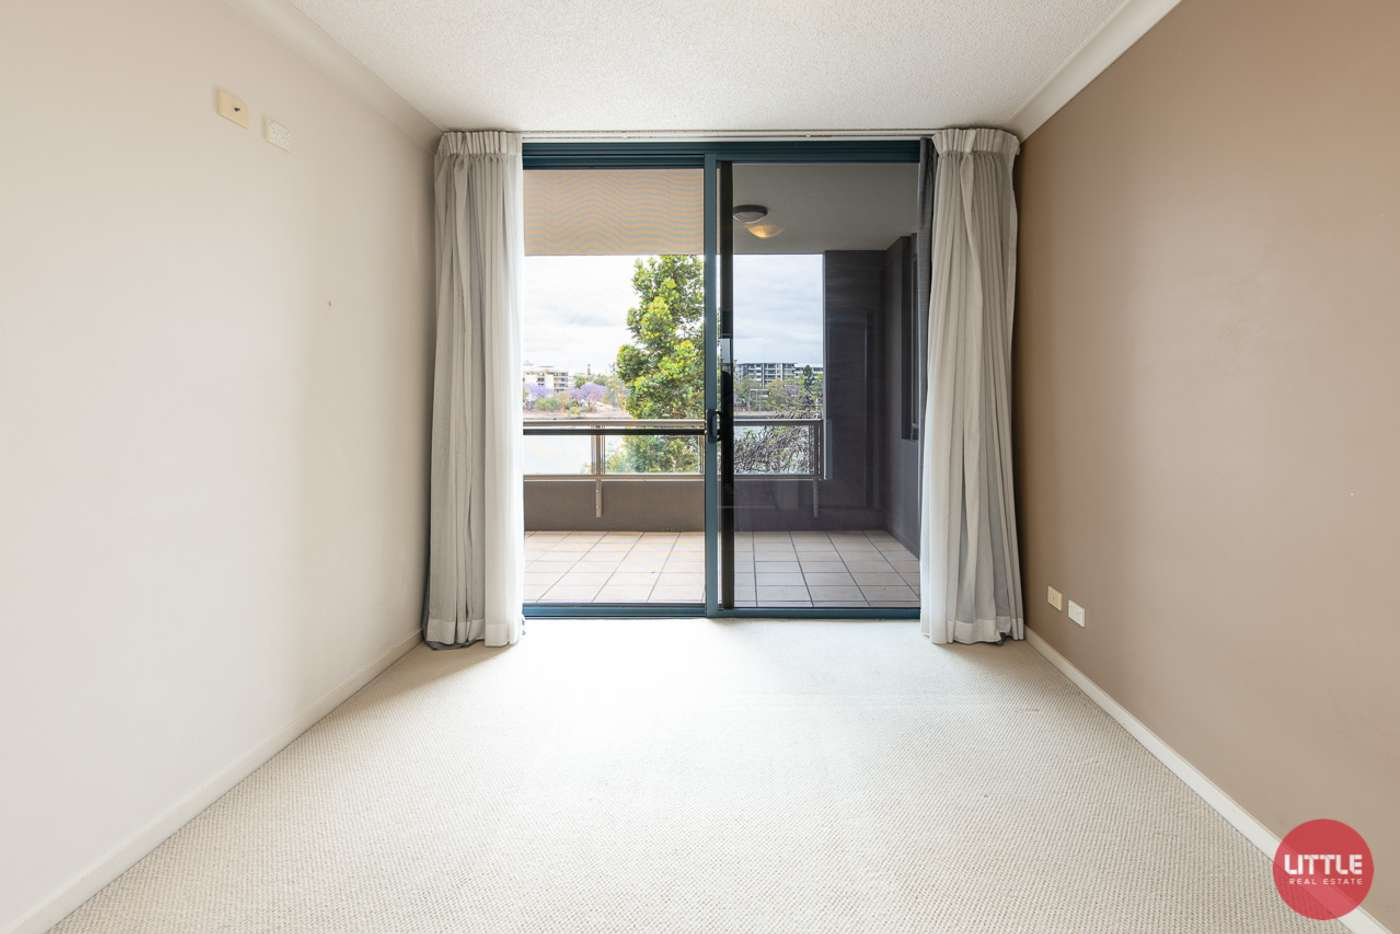 Seventh view of Homely apartment listing, 303/21 Patrick Lane, Toowong QLD 4066